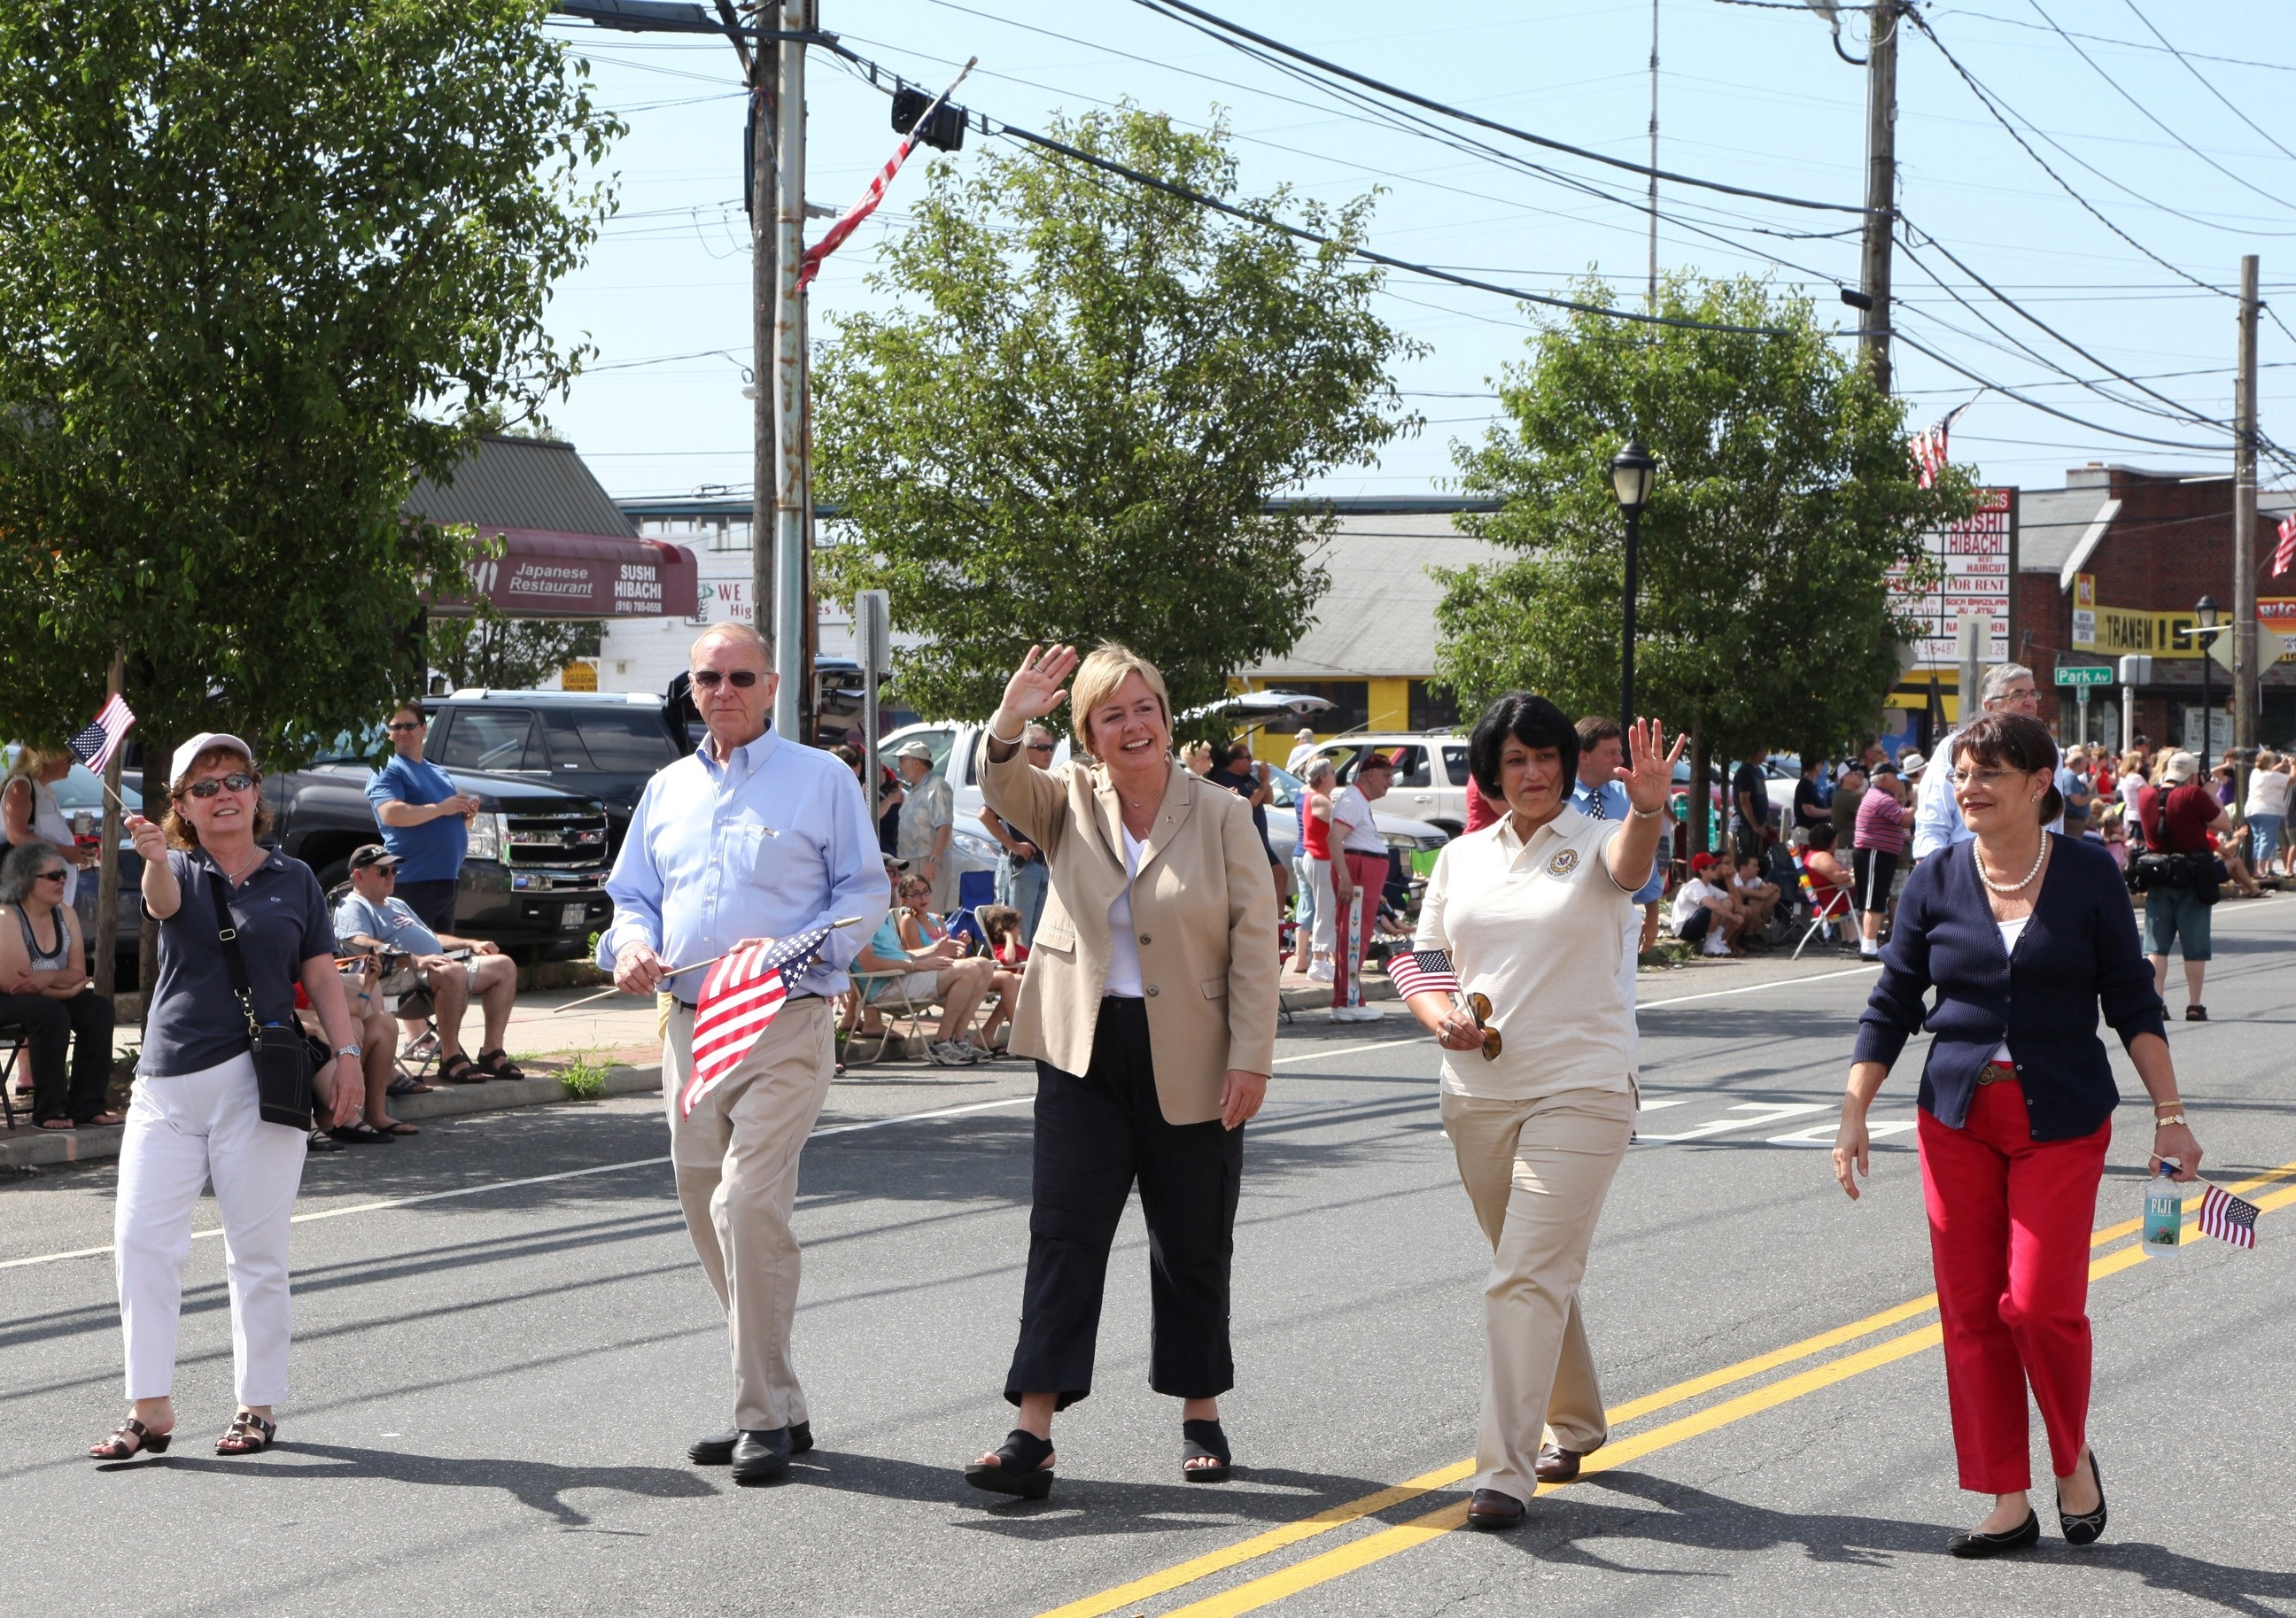 Assemblyman Dave McDonough and Town of Hempstead Supervisor Kate Murray (center) walk together during the Annual Wantagh 4th of July Parade.